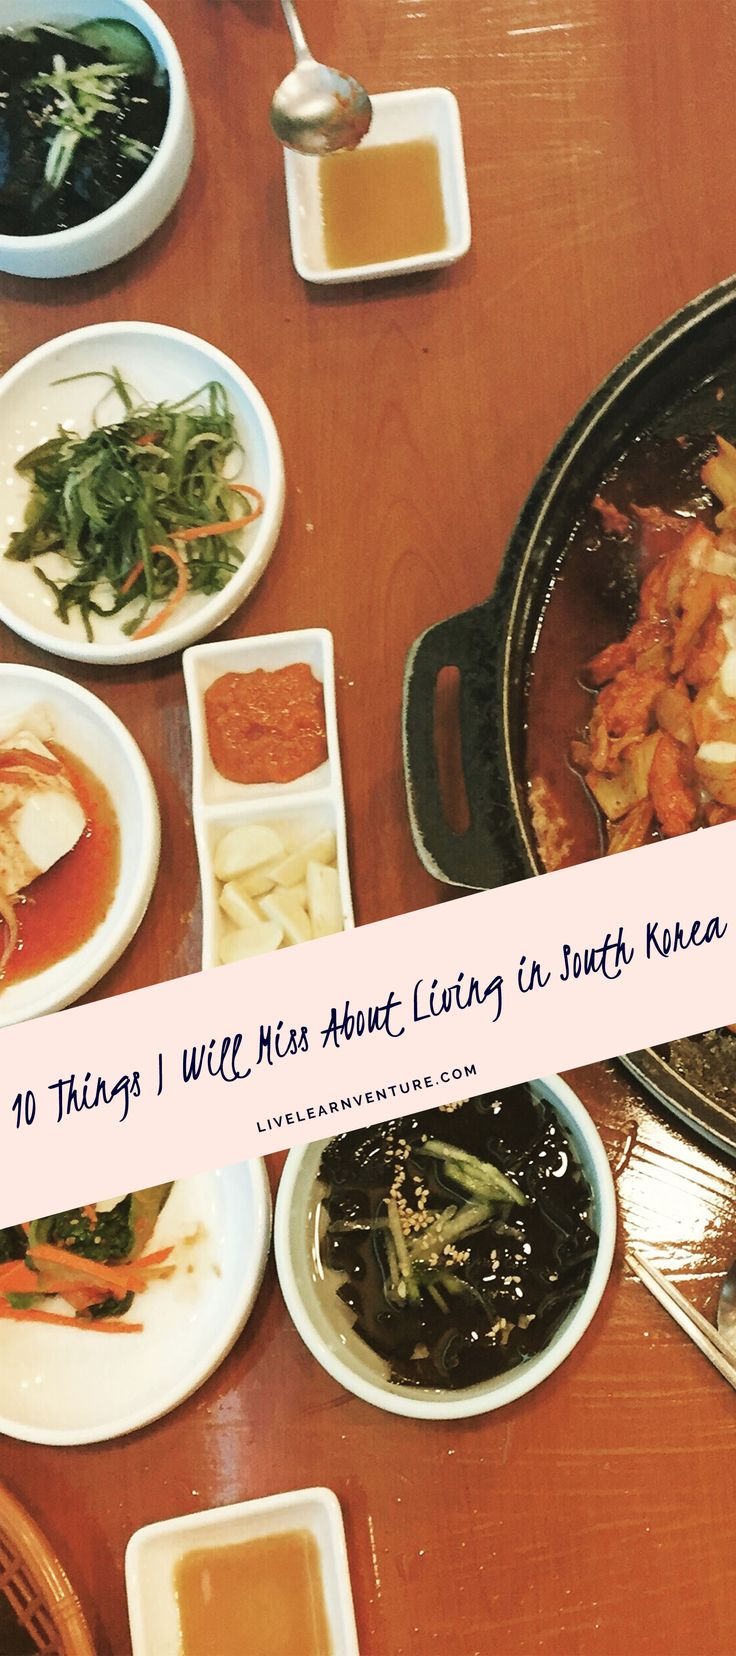 10 Things I Will Miss About Living in South Korea -- #travel #lifeabroad #Asia #SouthKorea #expat #Asiatravel